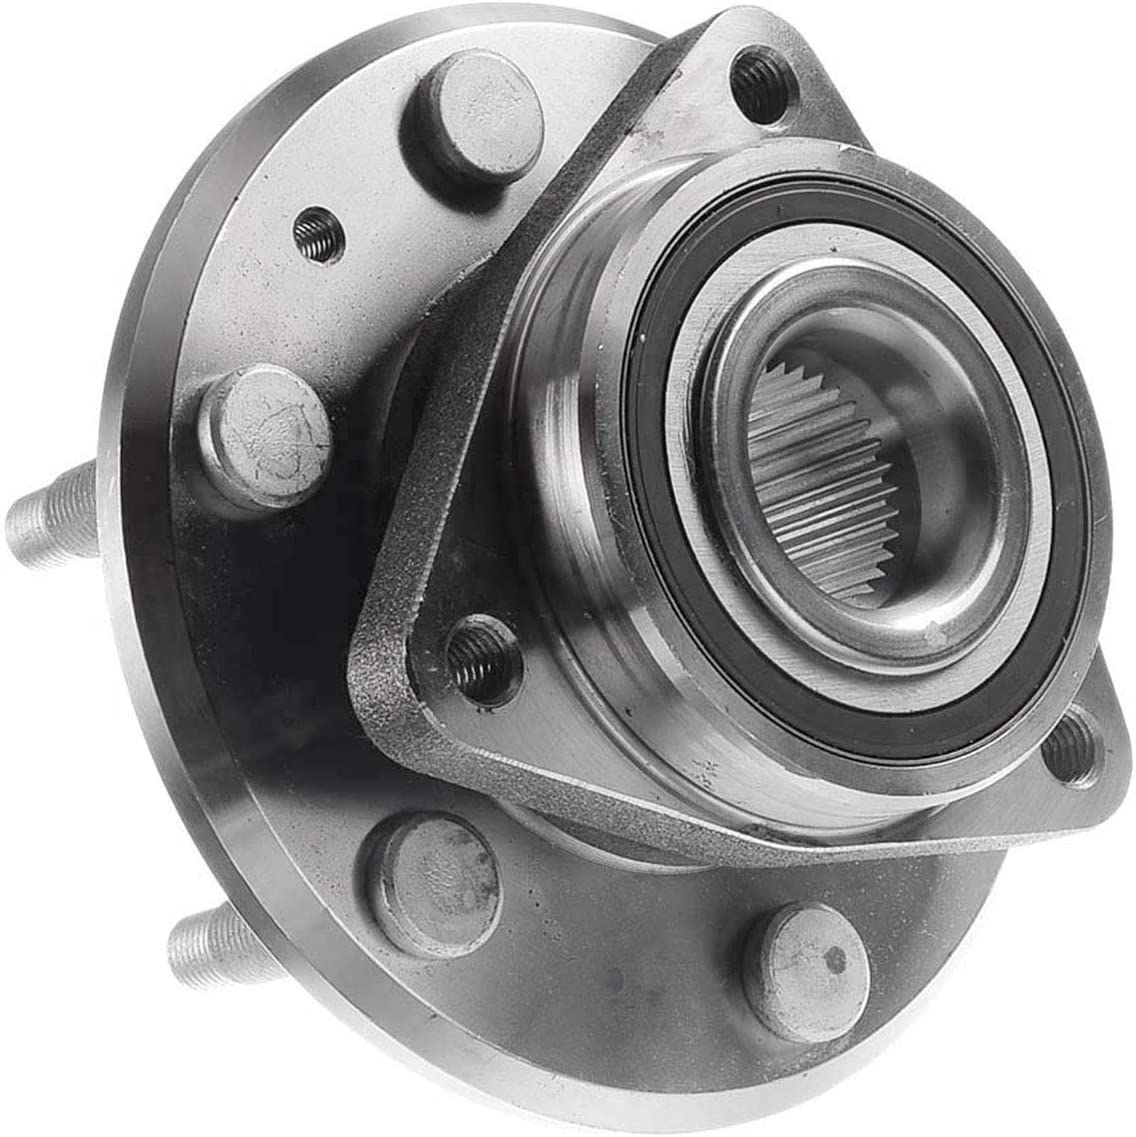 A-Premium Wheel Hub and Bearing Compatible with Buick Enclave 2008-2017 Chevy Traverse 2009-2017 GMC Acadia 2007-2016 Saturn Outlook 2007-2010 Front or Rear Axle